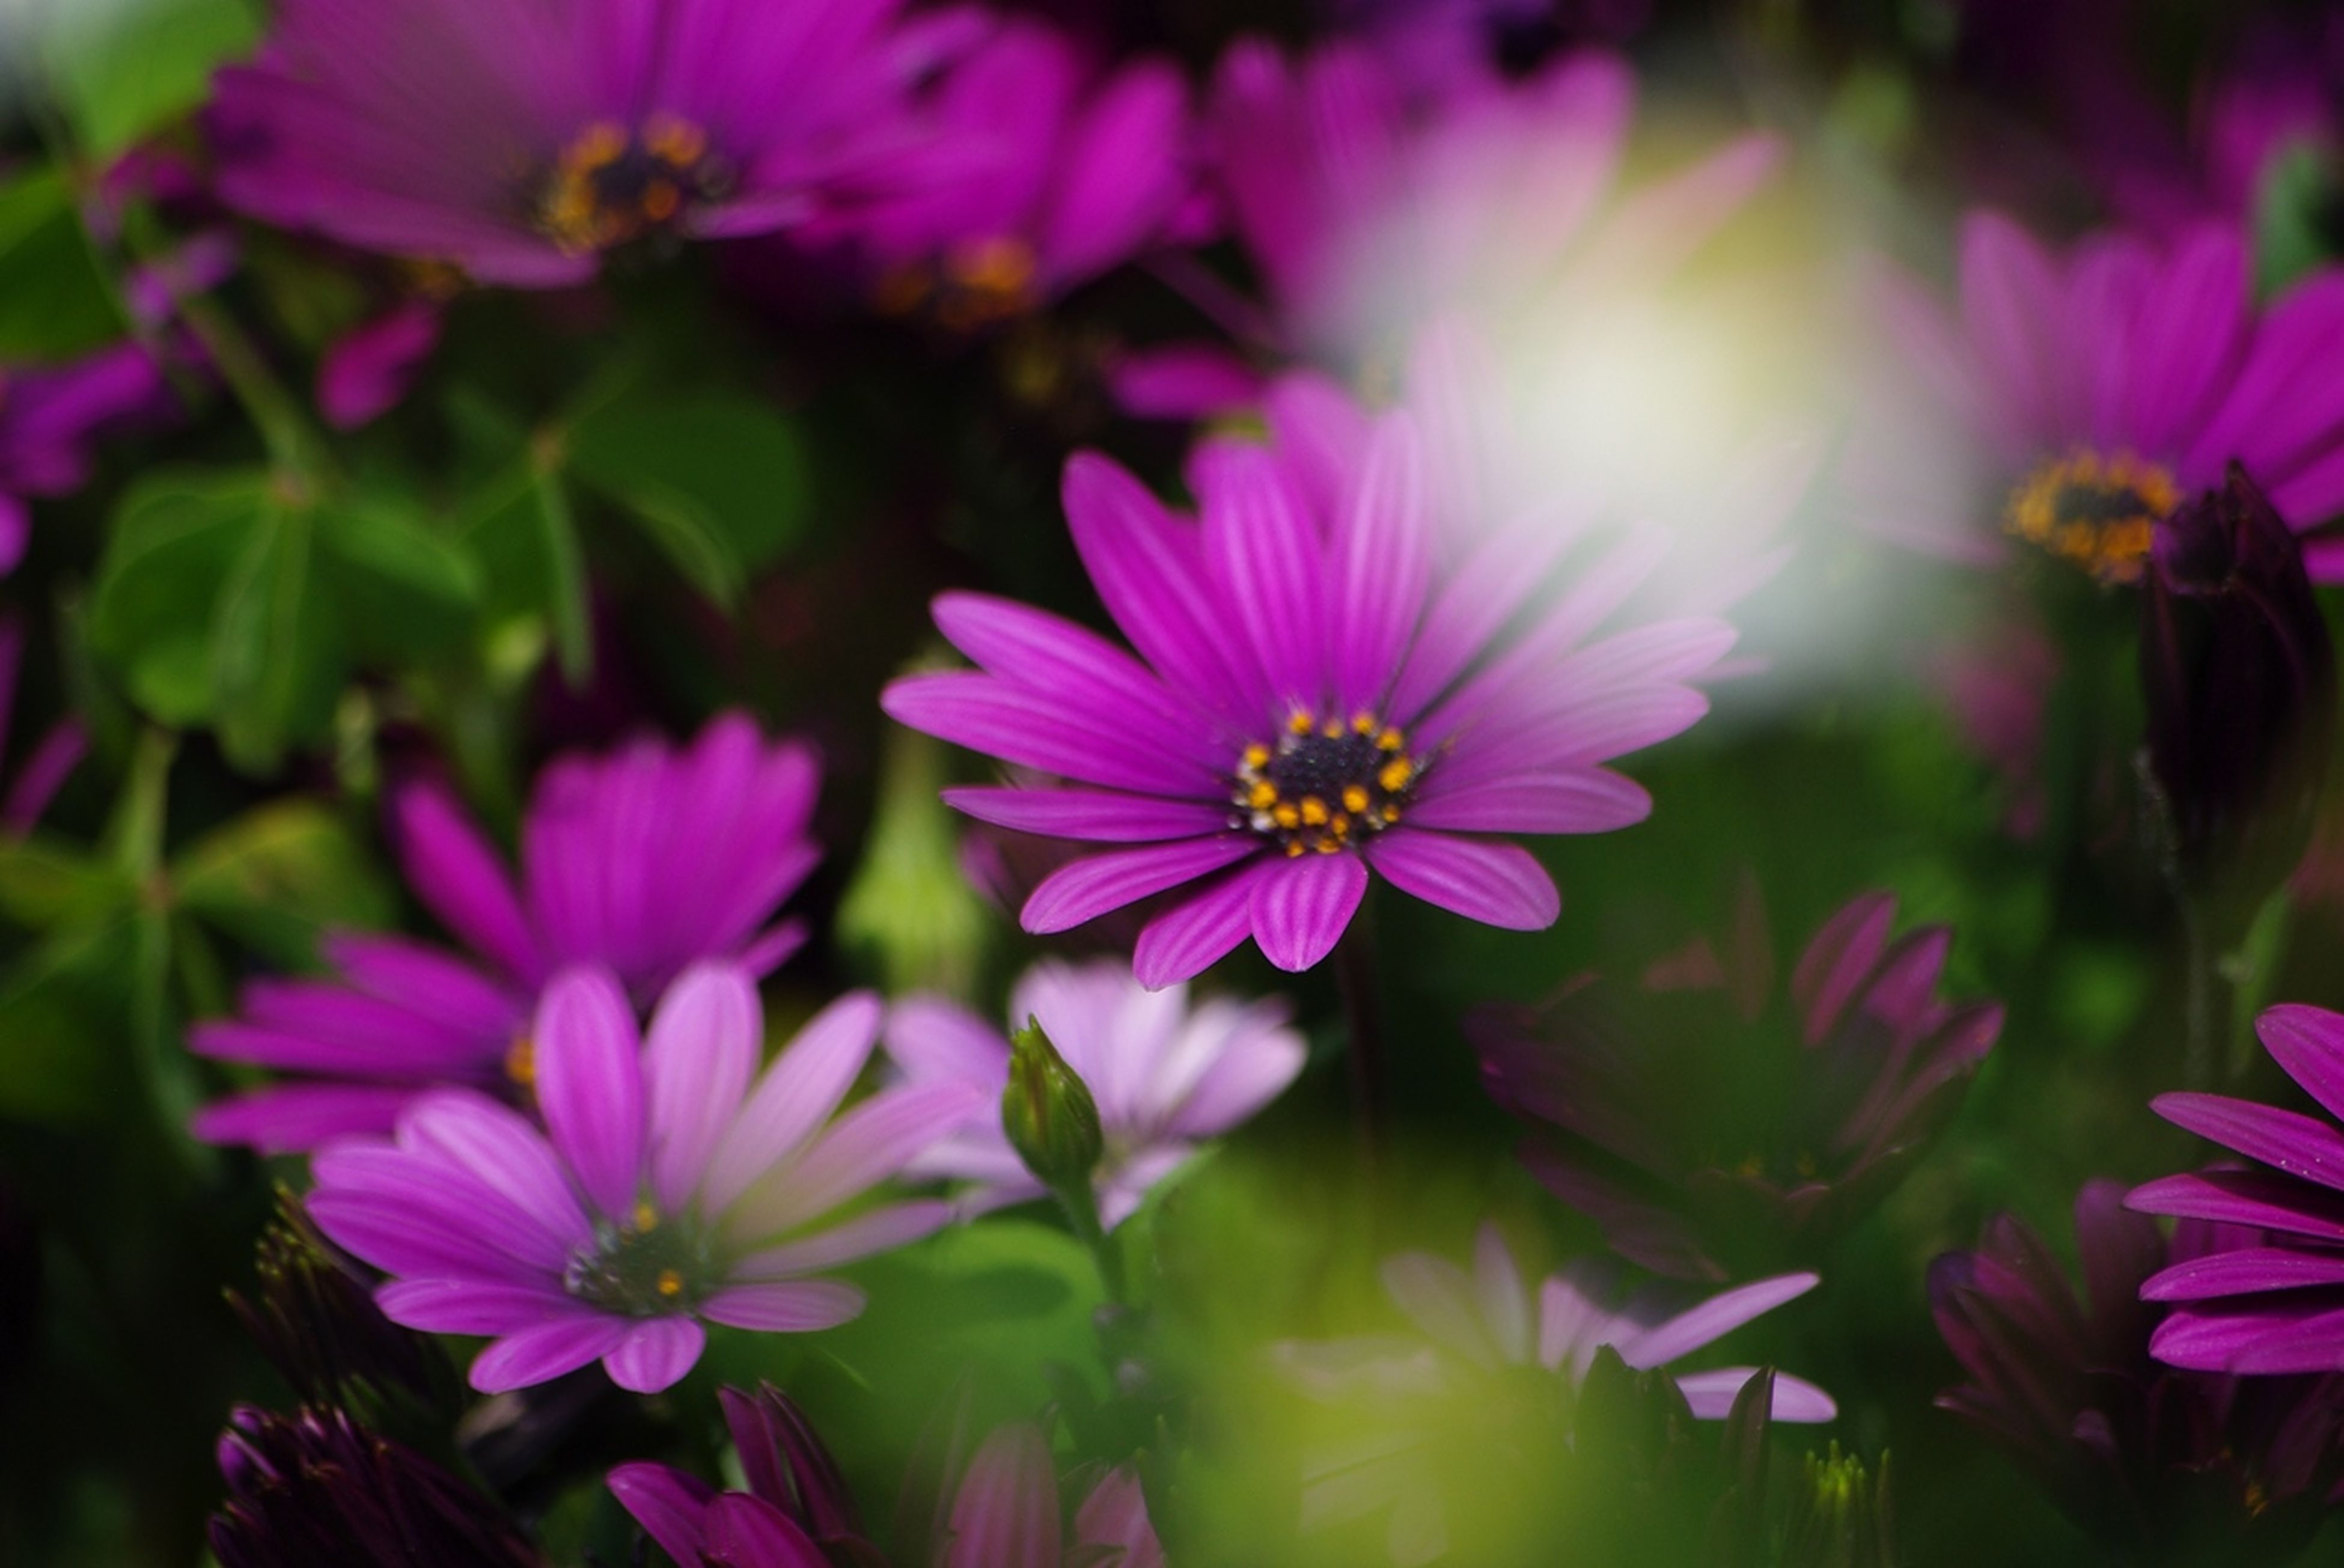 flower, freshness, petal, fragility, flower head, growth, beauty in nature, pink color, blooming, nature, focus on foreground, close-up, plant, pollen, in bloom, blossom, stamen, park - man made space, day, outdoors